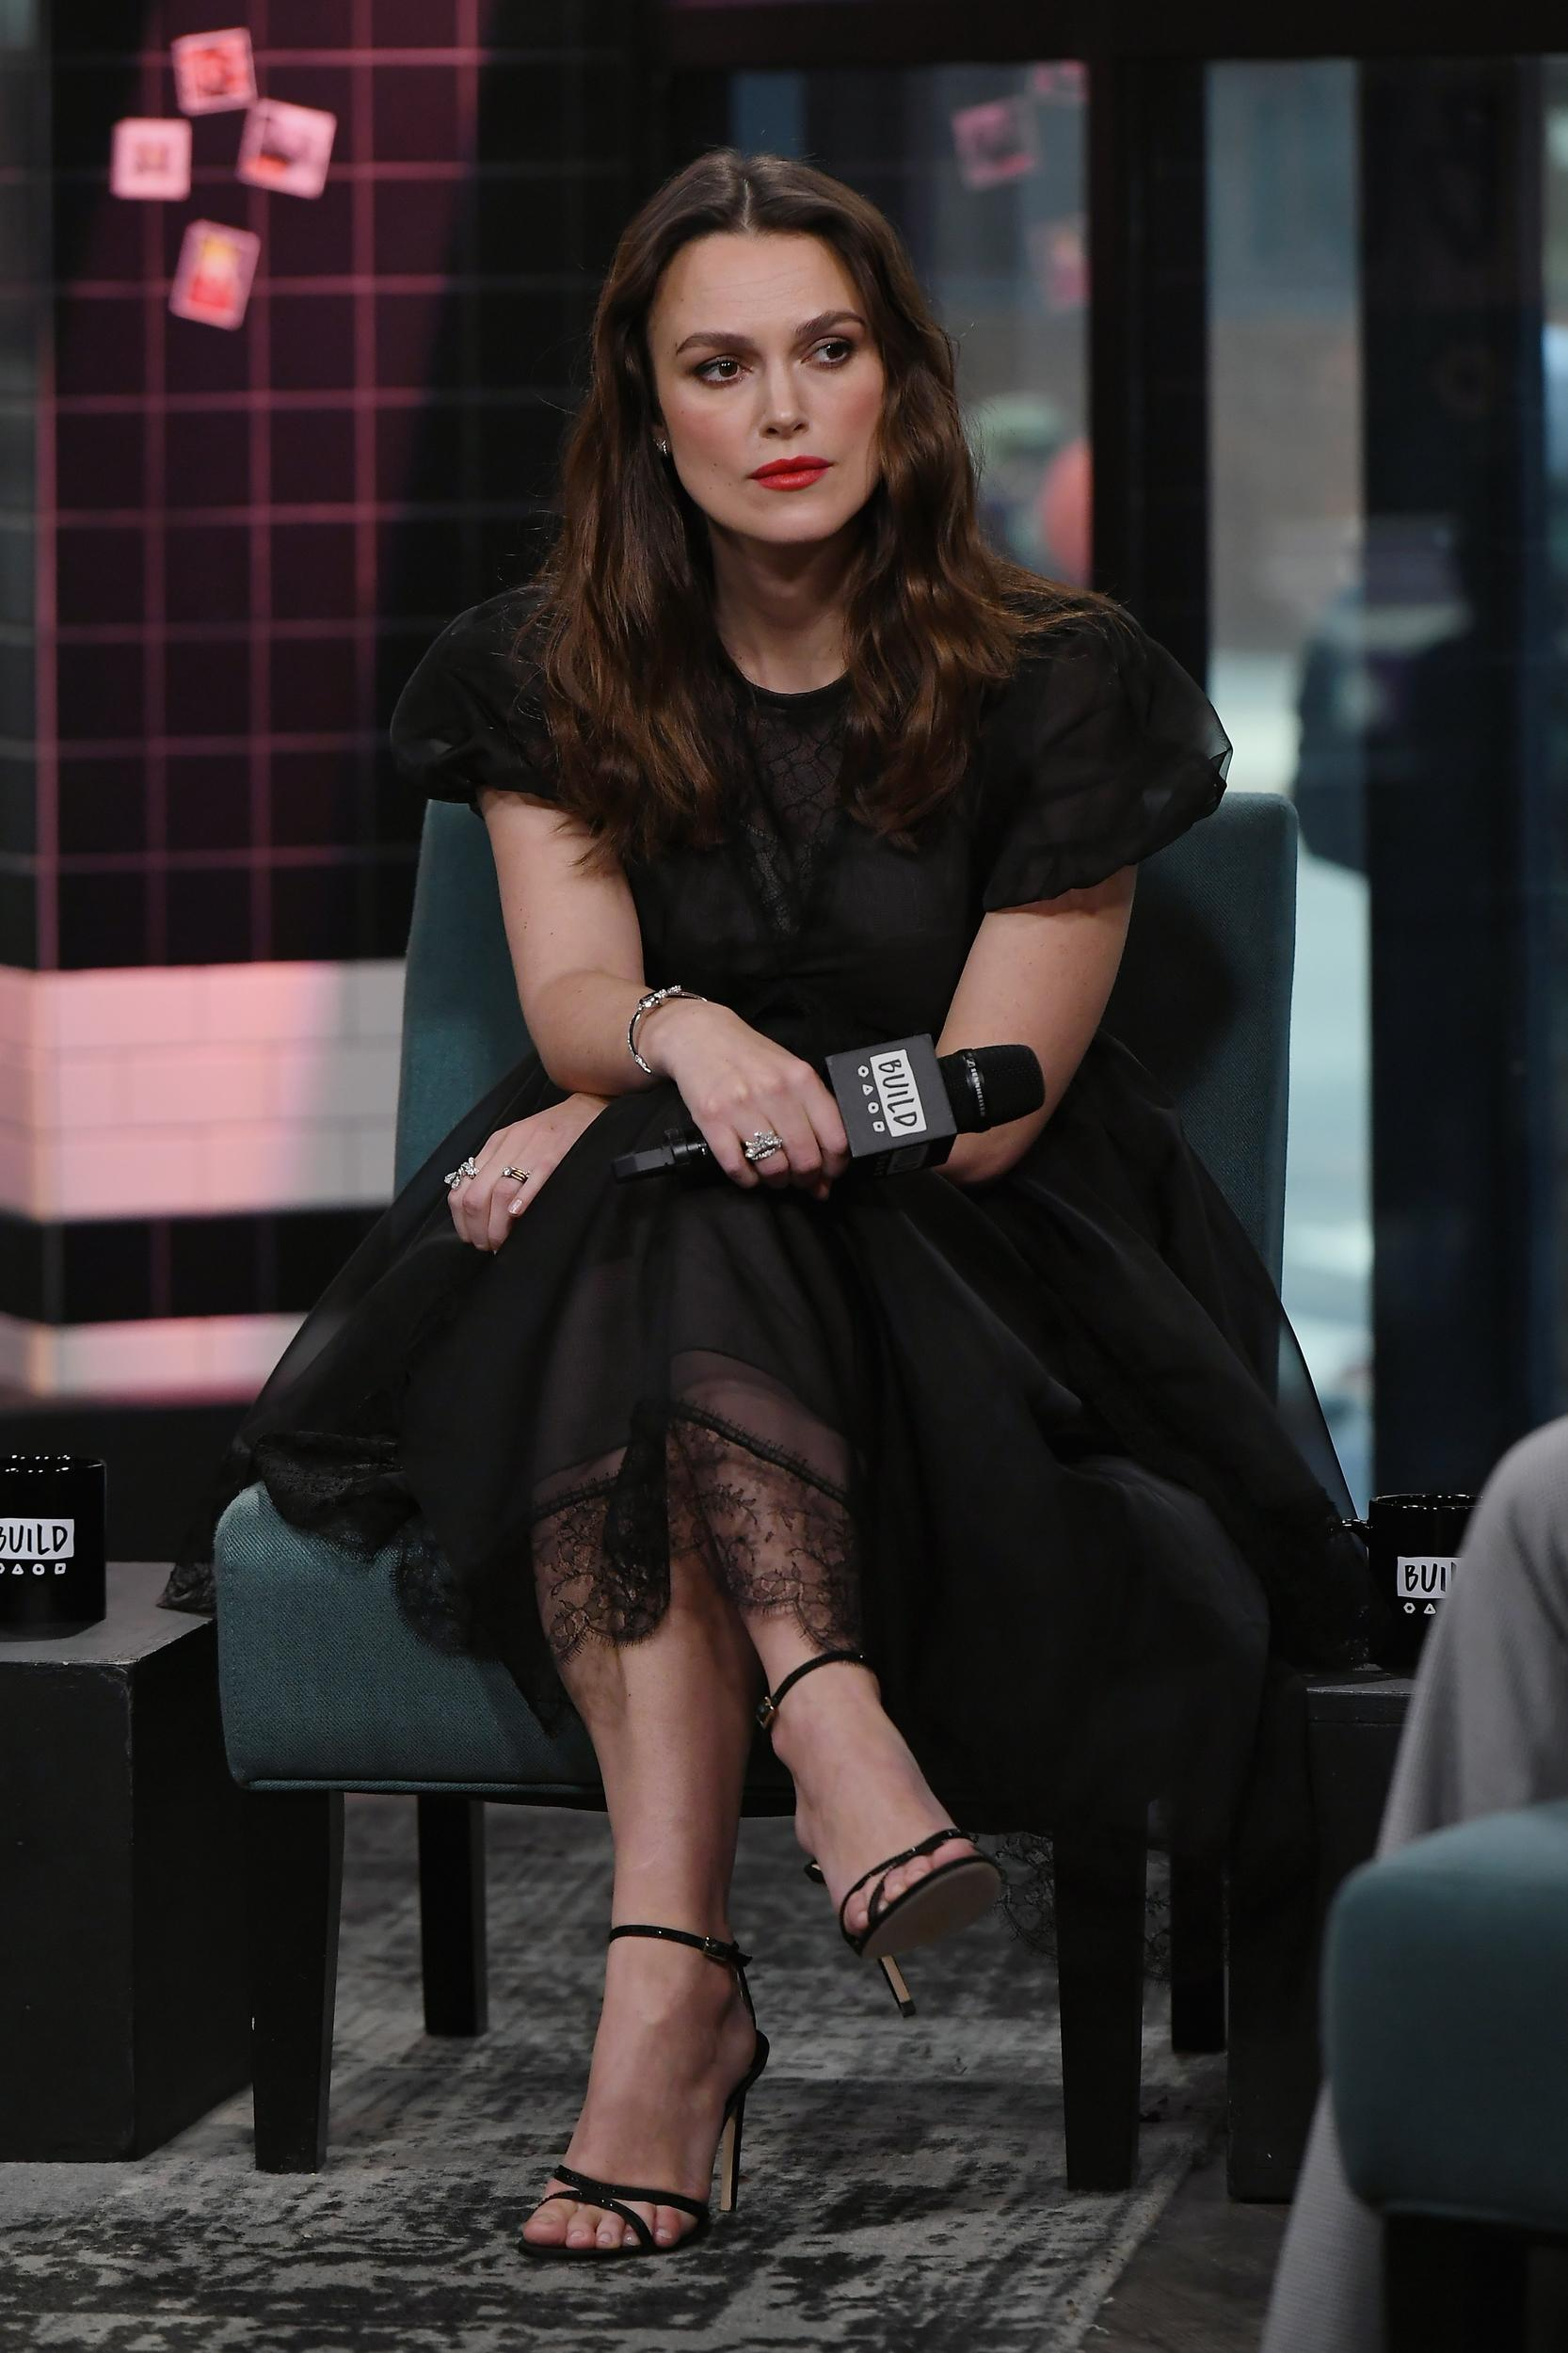 NEW YORK, NEW YORK - MARCH 12: Keira Knightley visits Build to discuss new movie 'The Aftermath' at Build Studio on March 12, 2019 in New York City. (Photo by Nicholas Hunt/Getty Images)